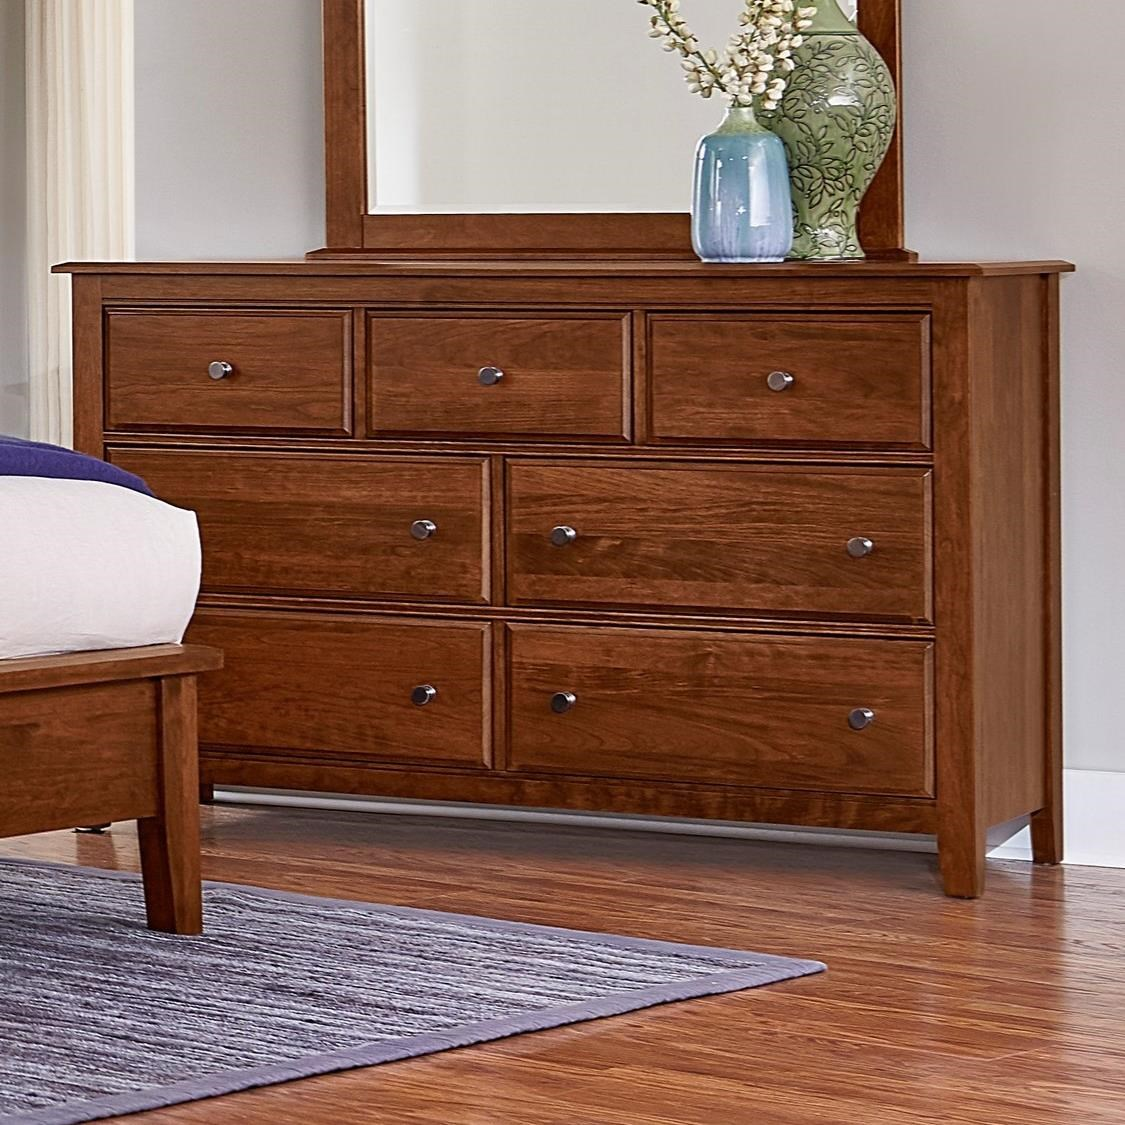 Artisan Choices Loft Triple Dresser - 7 Drawers by Artisan & Post at Crowley Furniture & Mattress